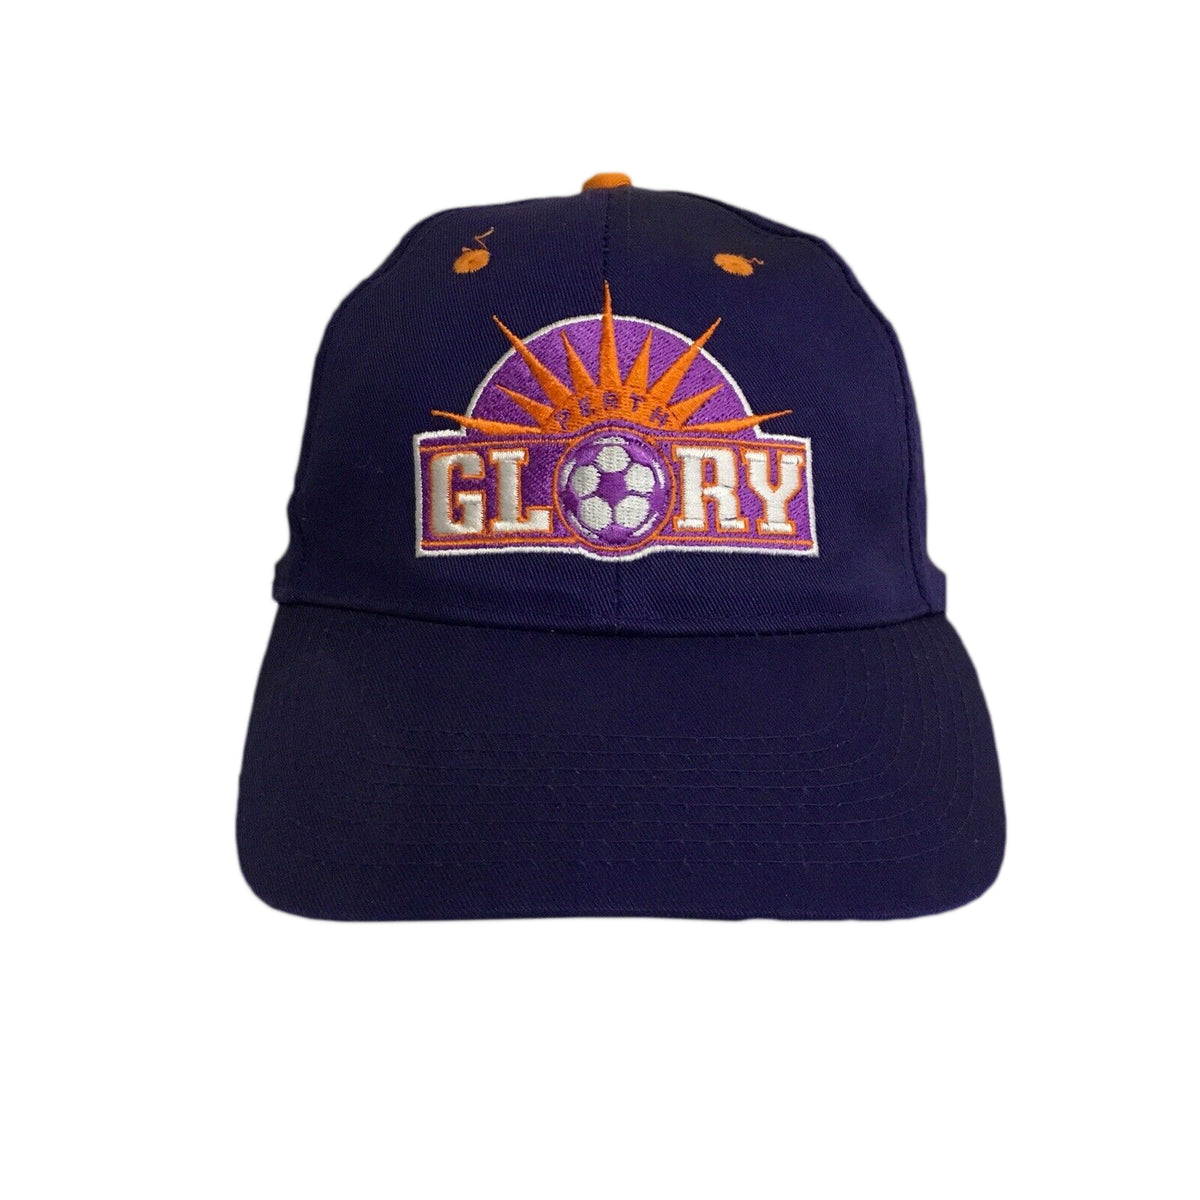 Perth Glory Soccer Vintage 1990's Mens Baseball Cap